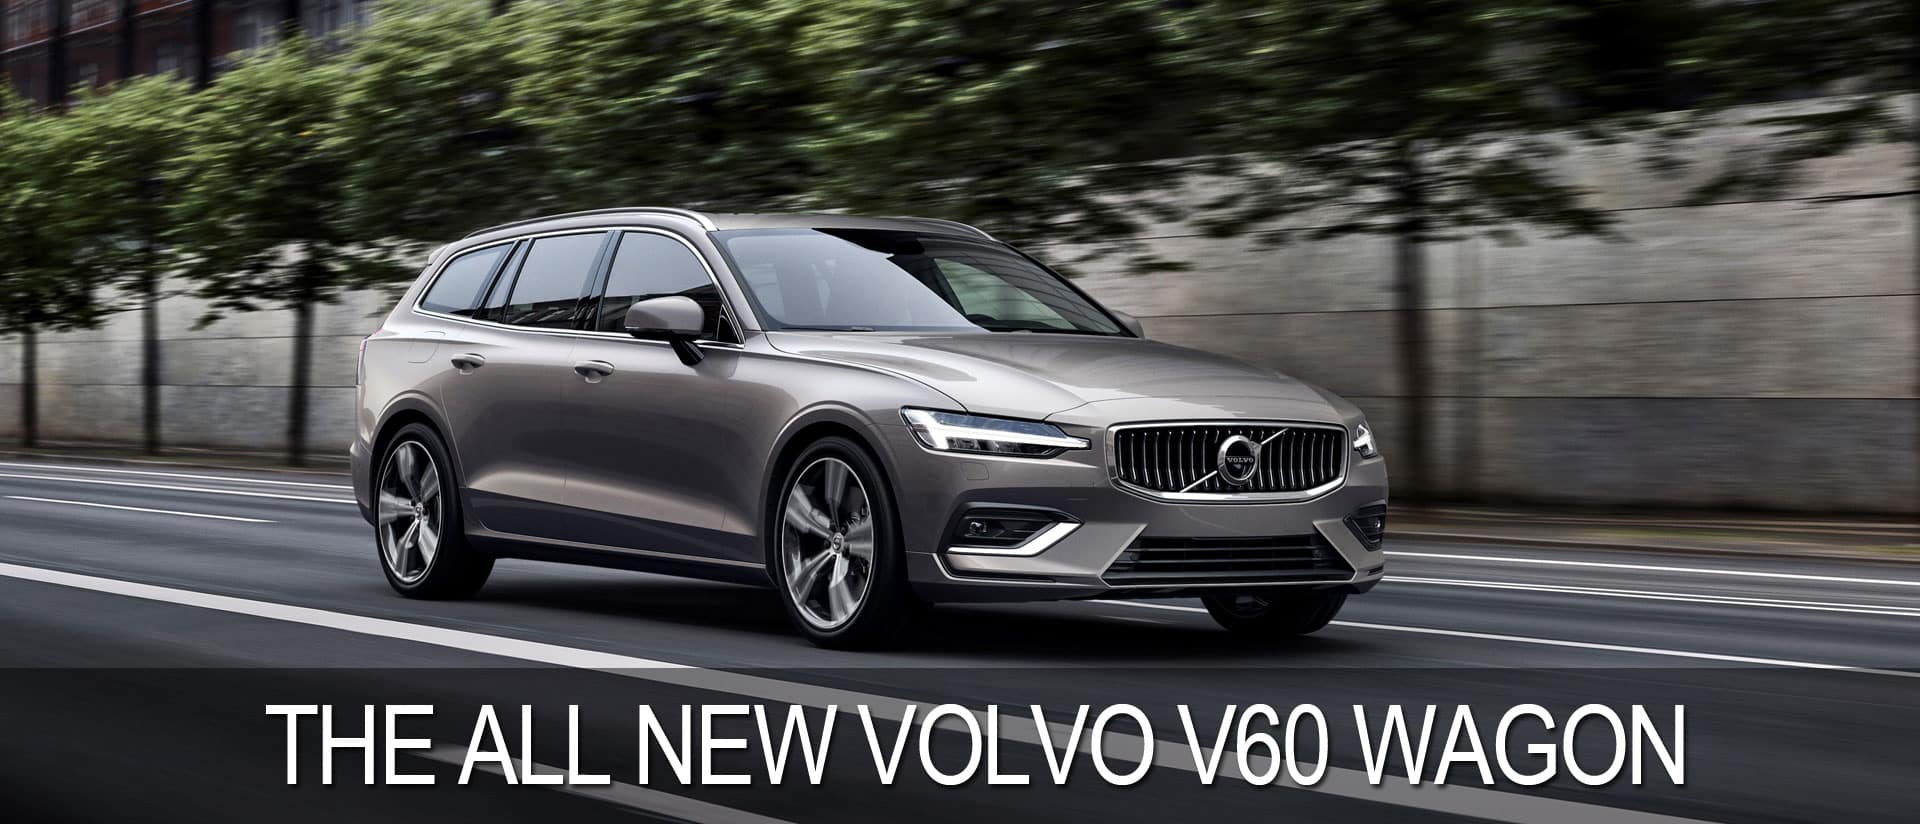 v60-wagon-carling-volvo